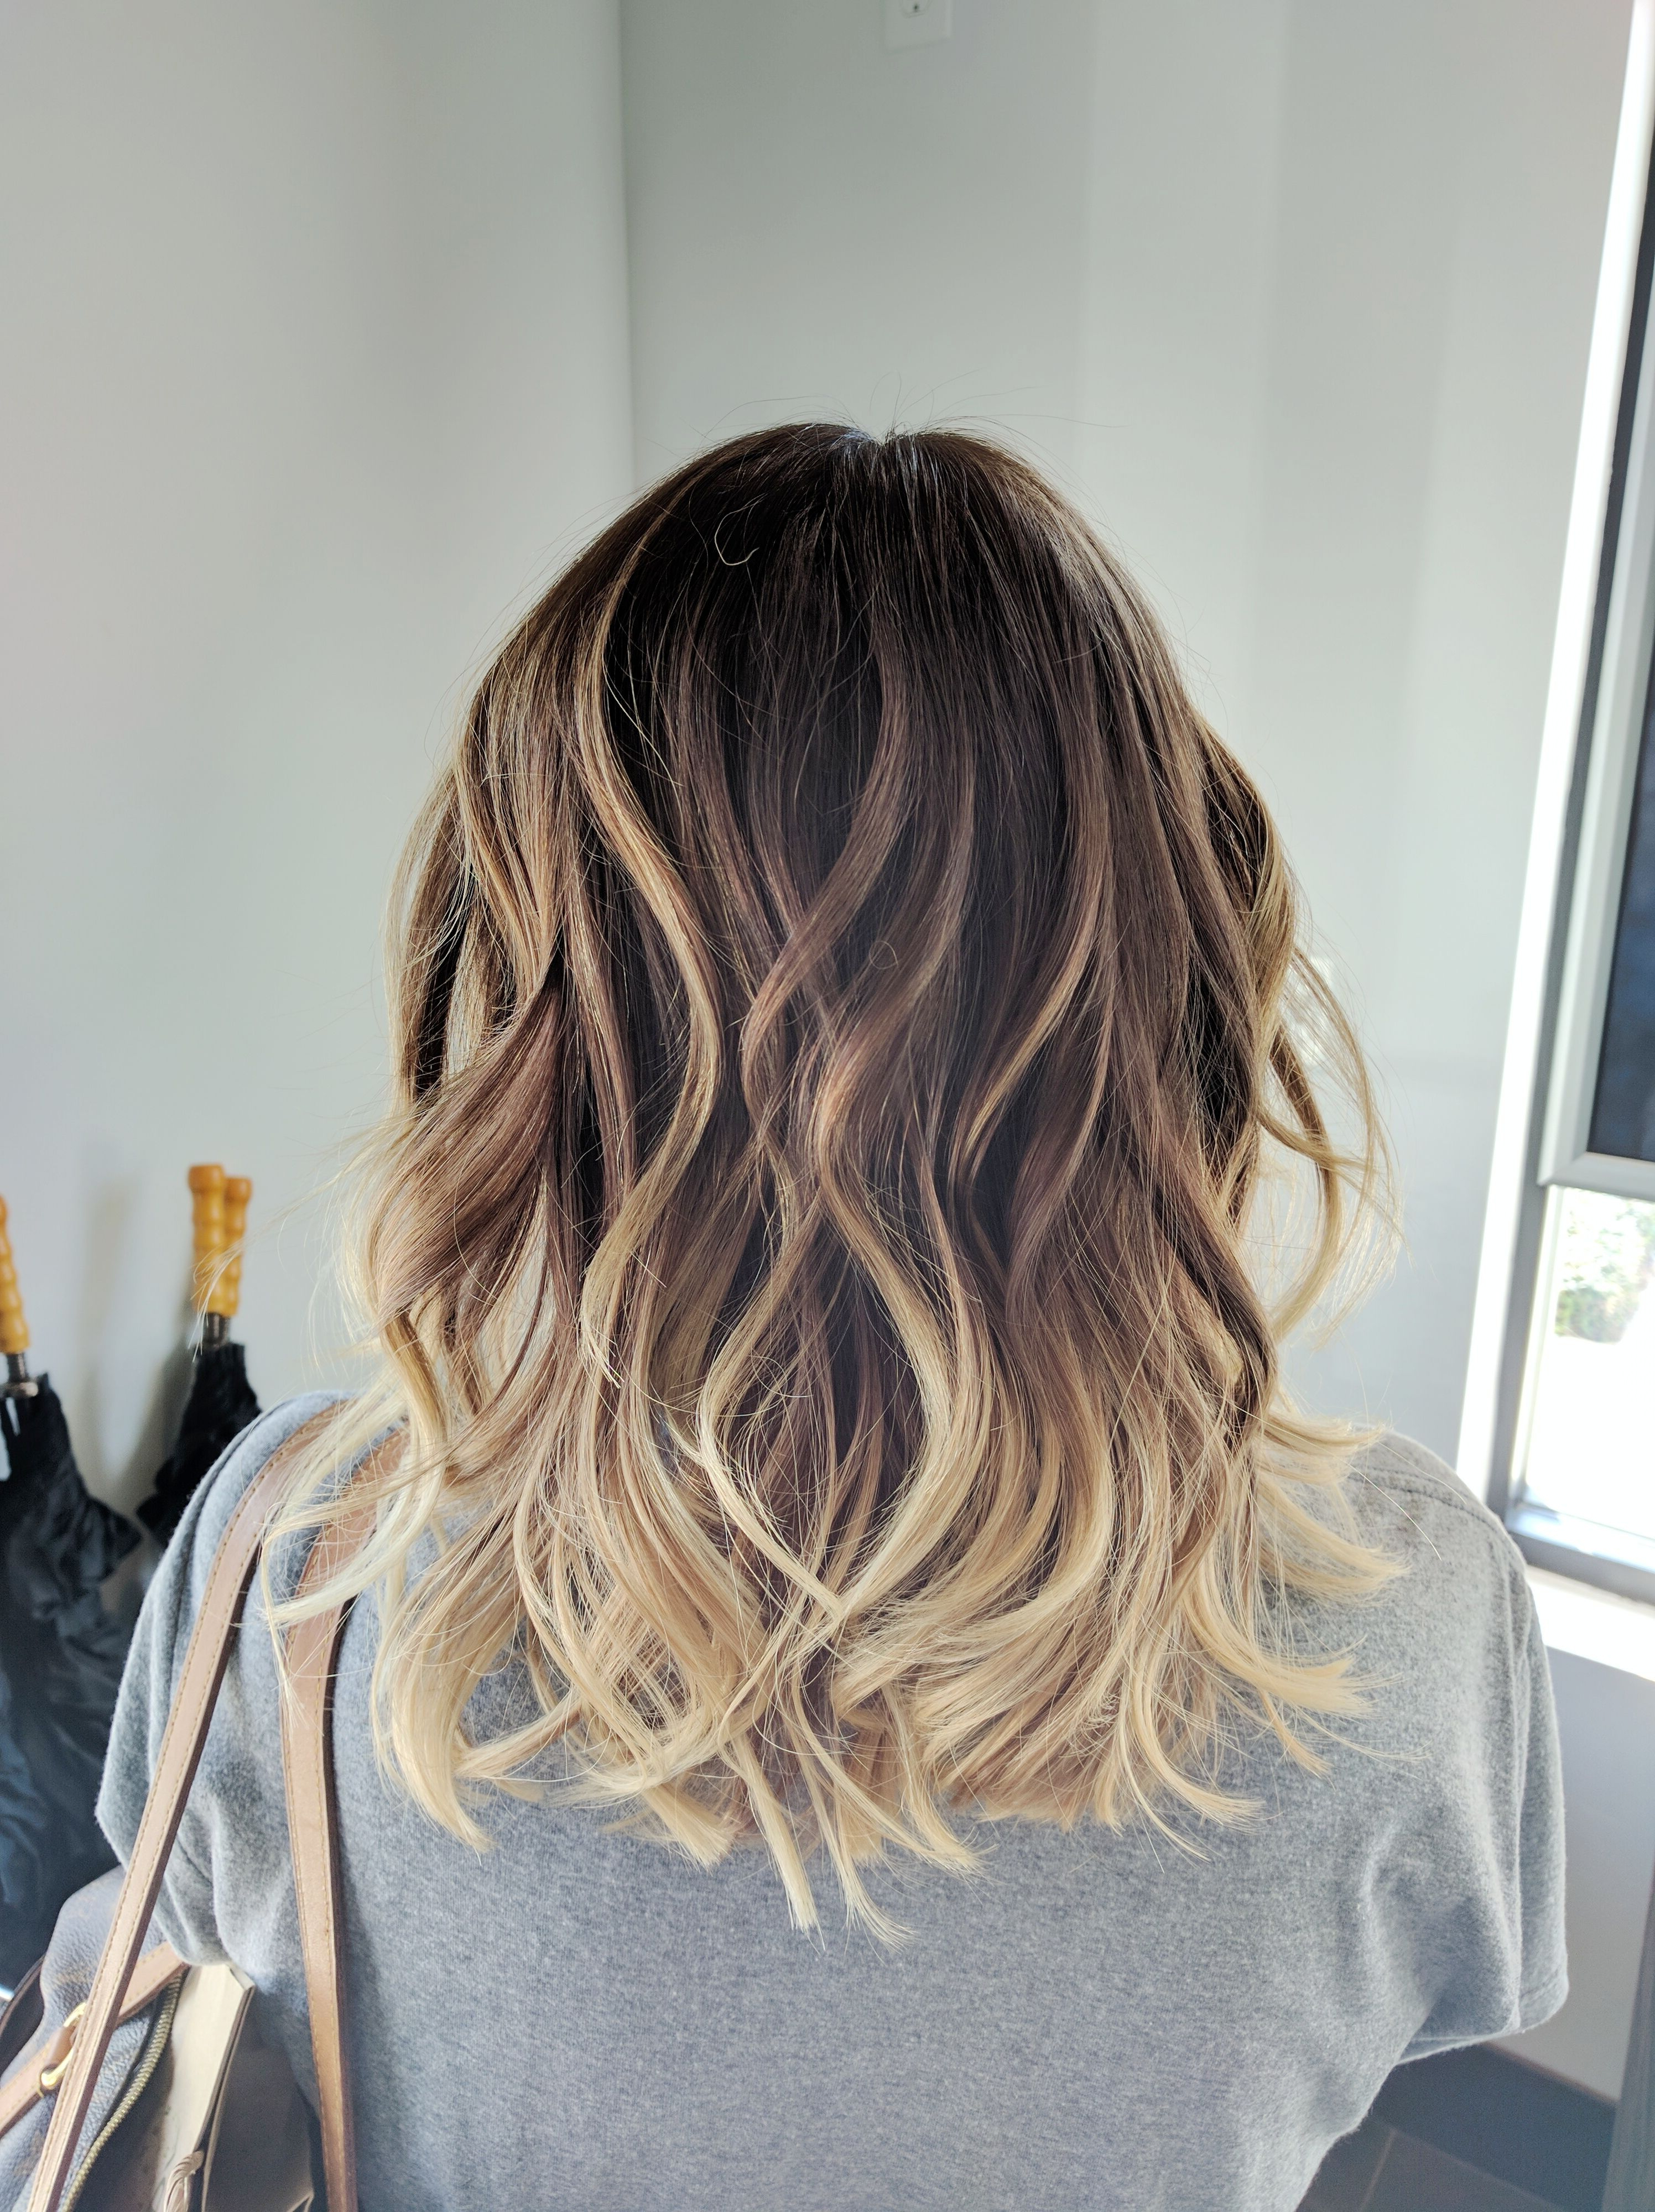 Ombre Balayage Color Melt Blonde Highlights Long Bob Medium Length Inside Most Popular Medium Brown Tones Hairstyles With Subtle Highlights (Gallery 3 of 20)